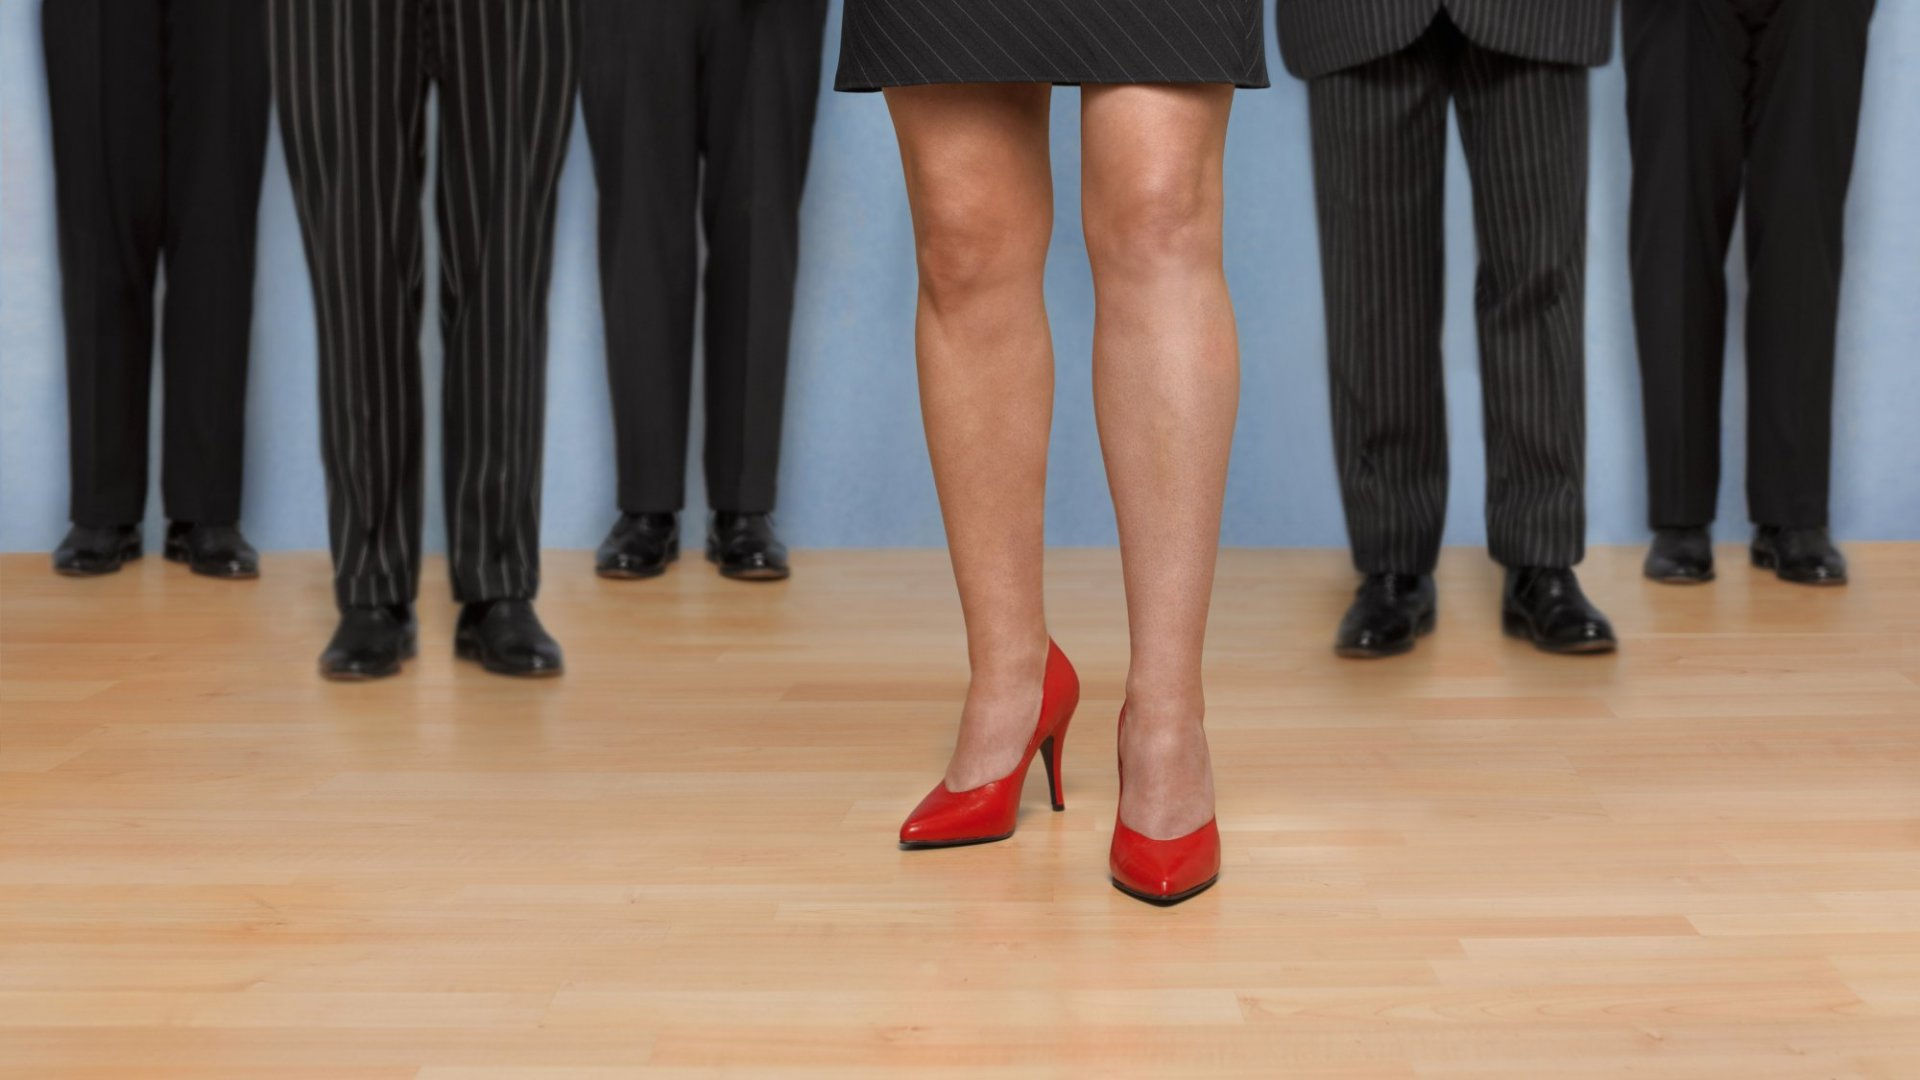 Time For High Heels at the Table? All-Male Boards Cost $655 Billion